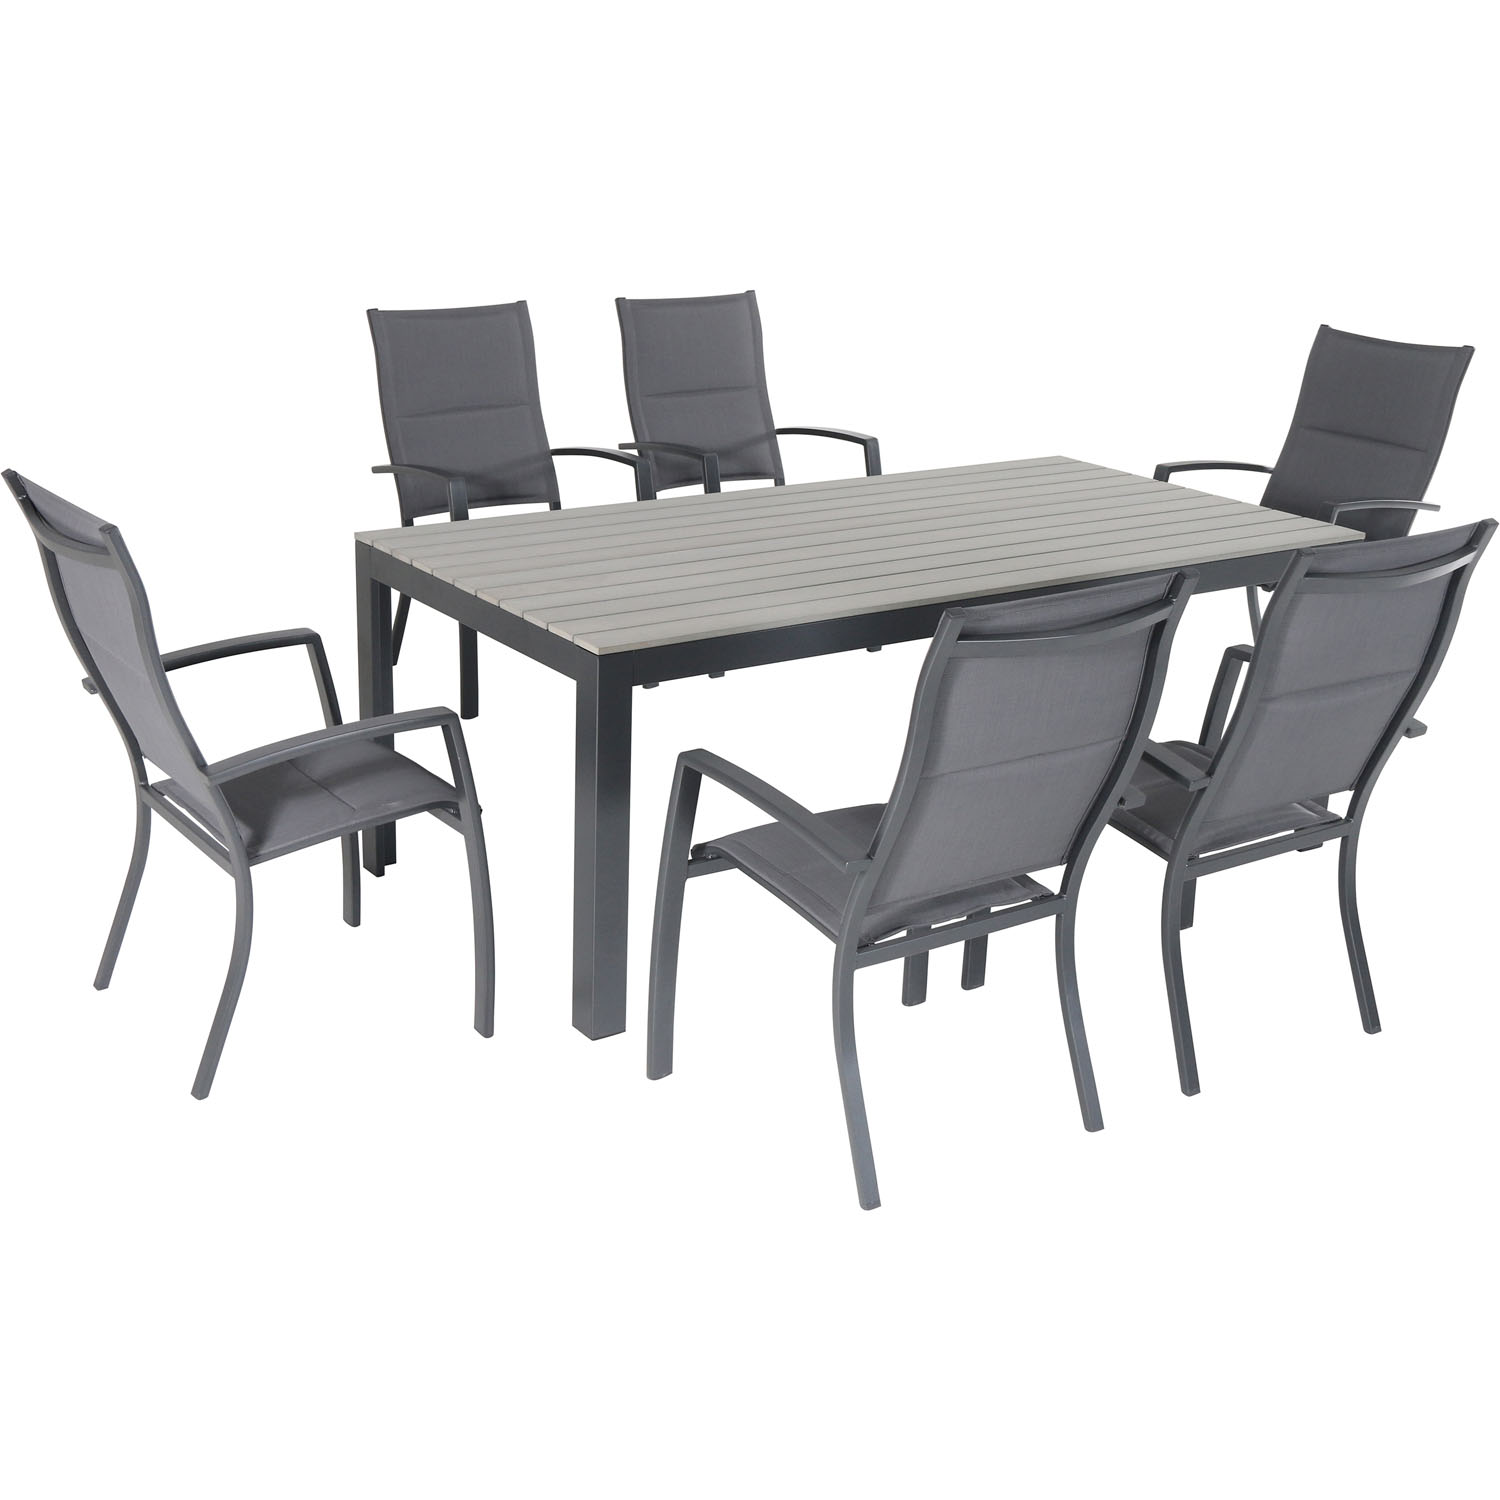 Hanover Tucson 7-Piece Dining Set with 6 Padded Sling Chairs and a Faux Wood Dining Table